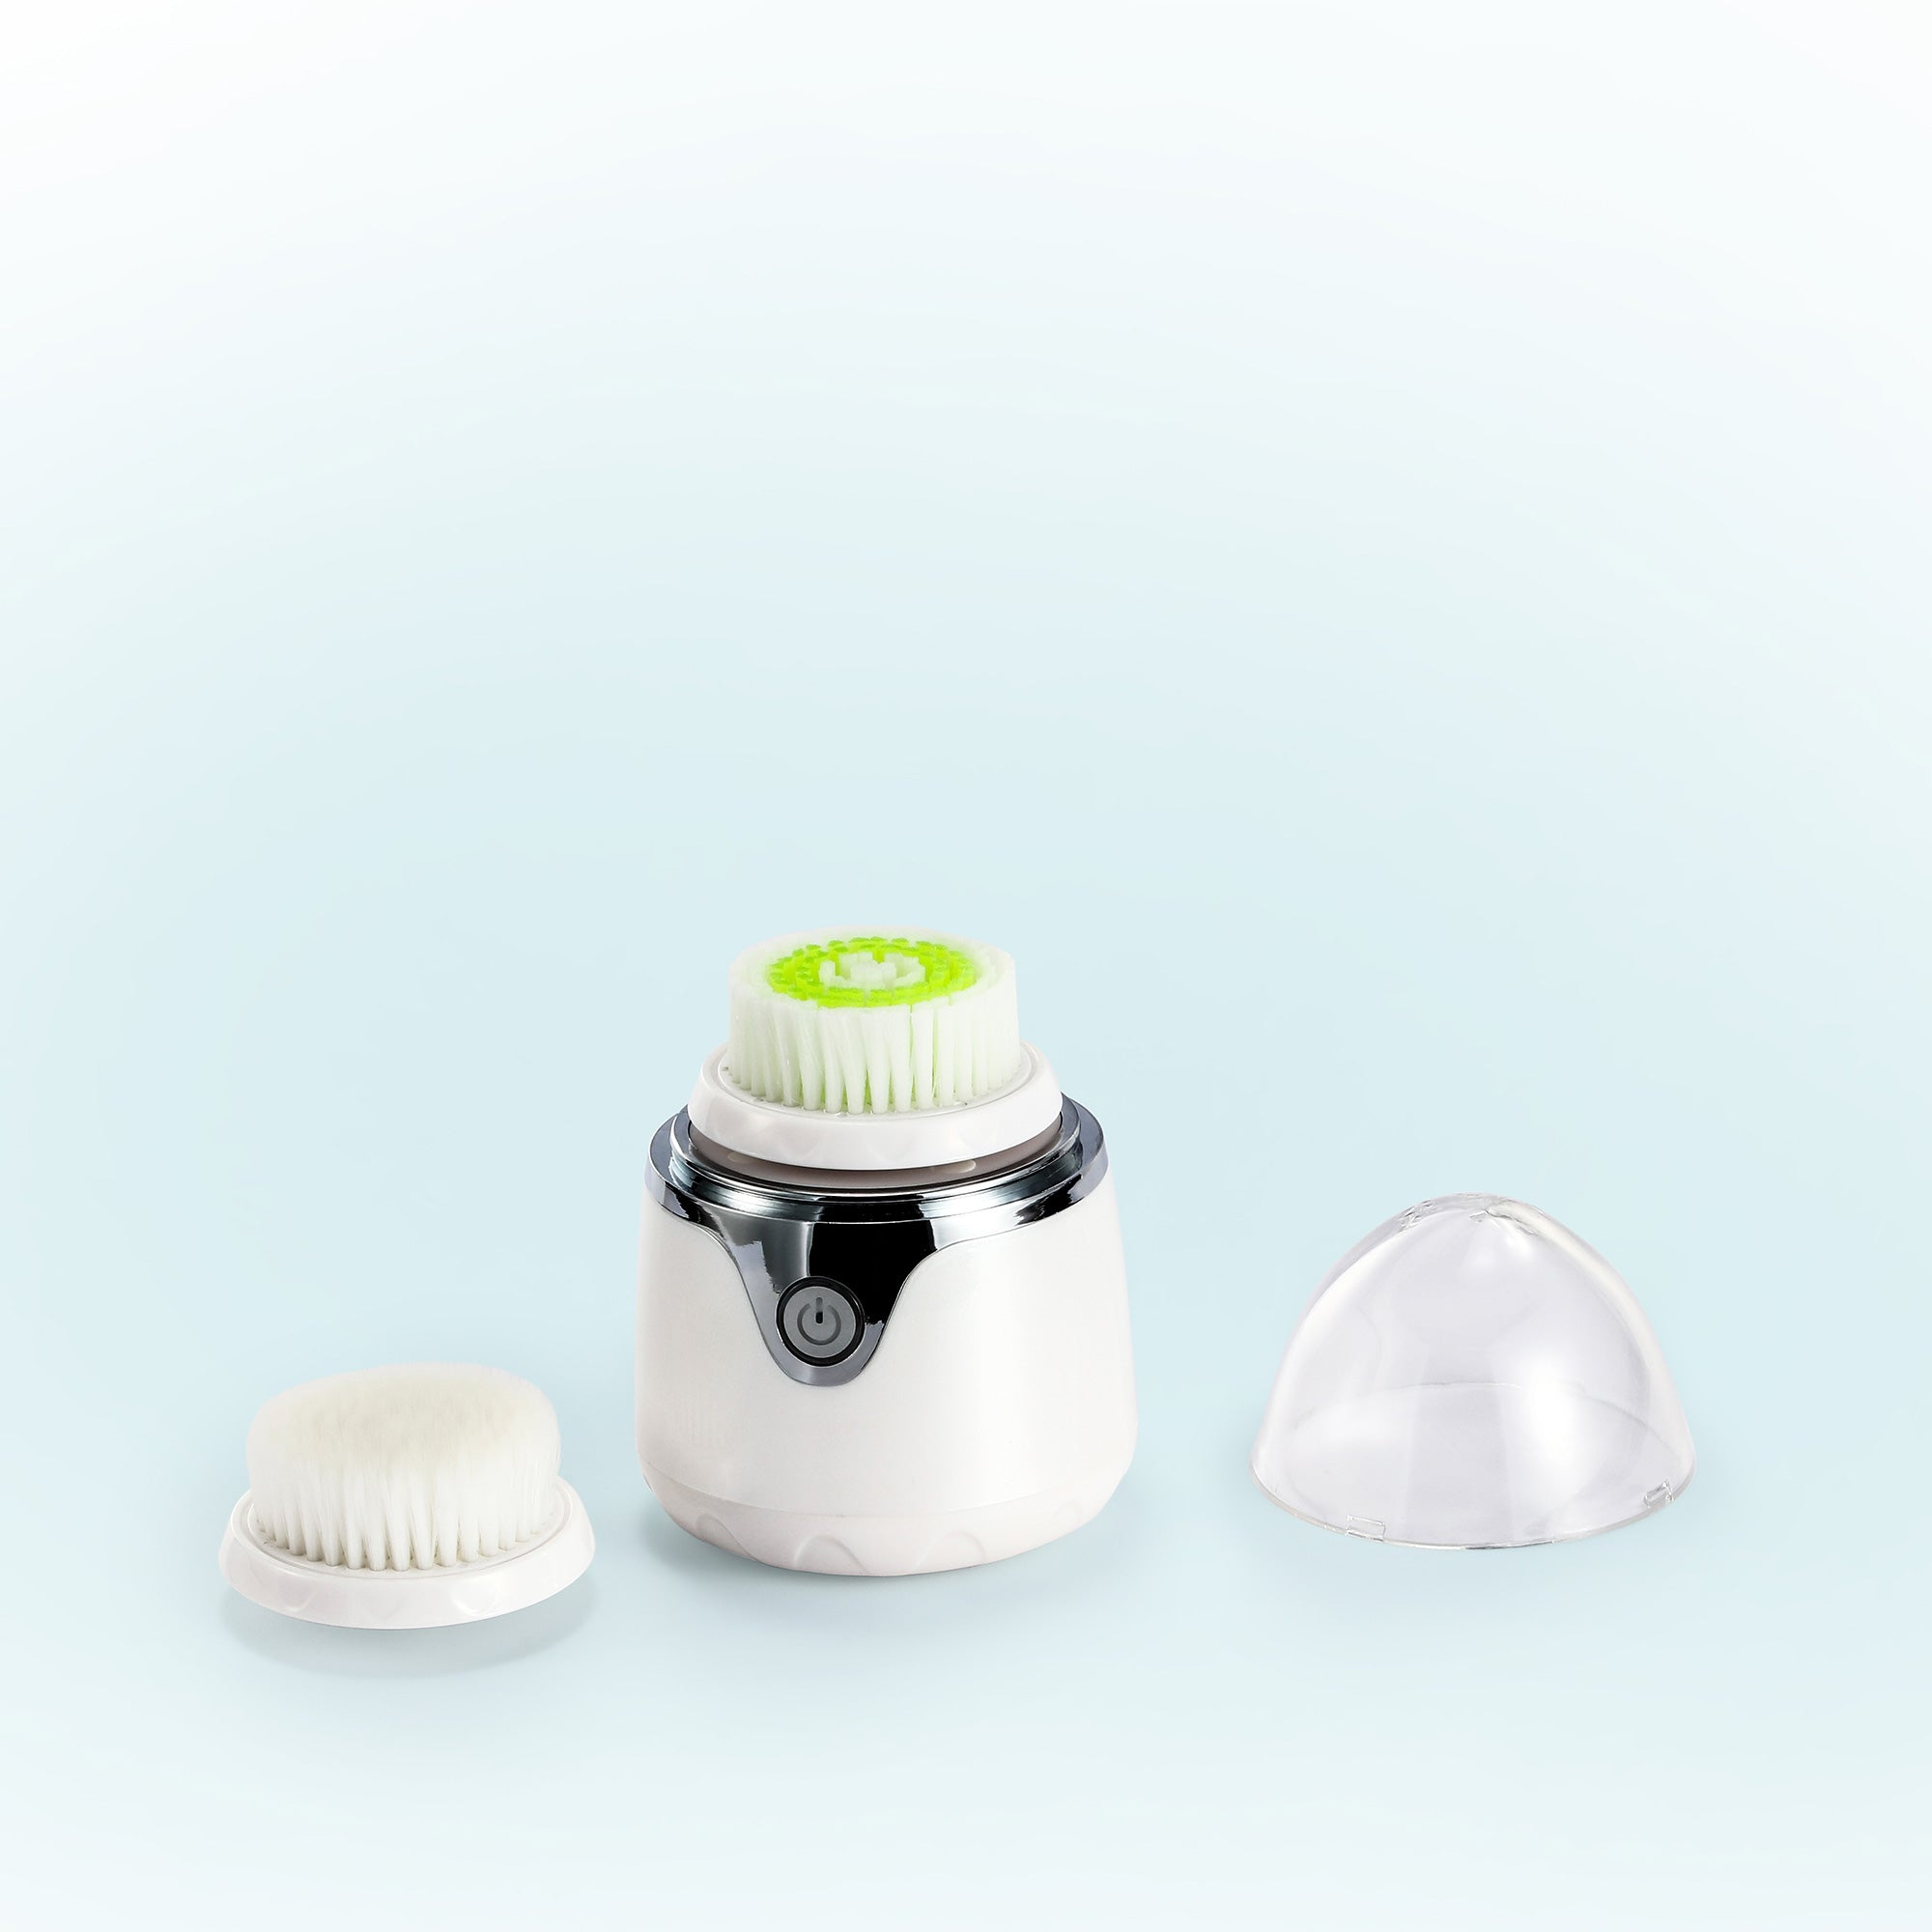 Mabaoha SFC06 mini Ultrasonic waterproof facial cleaner - Mabaoha